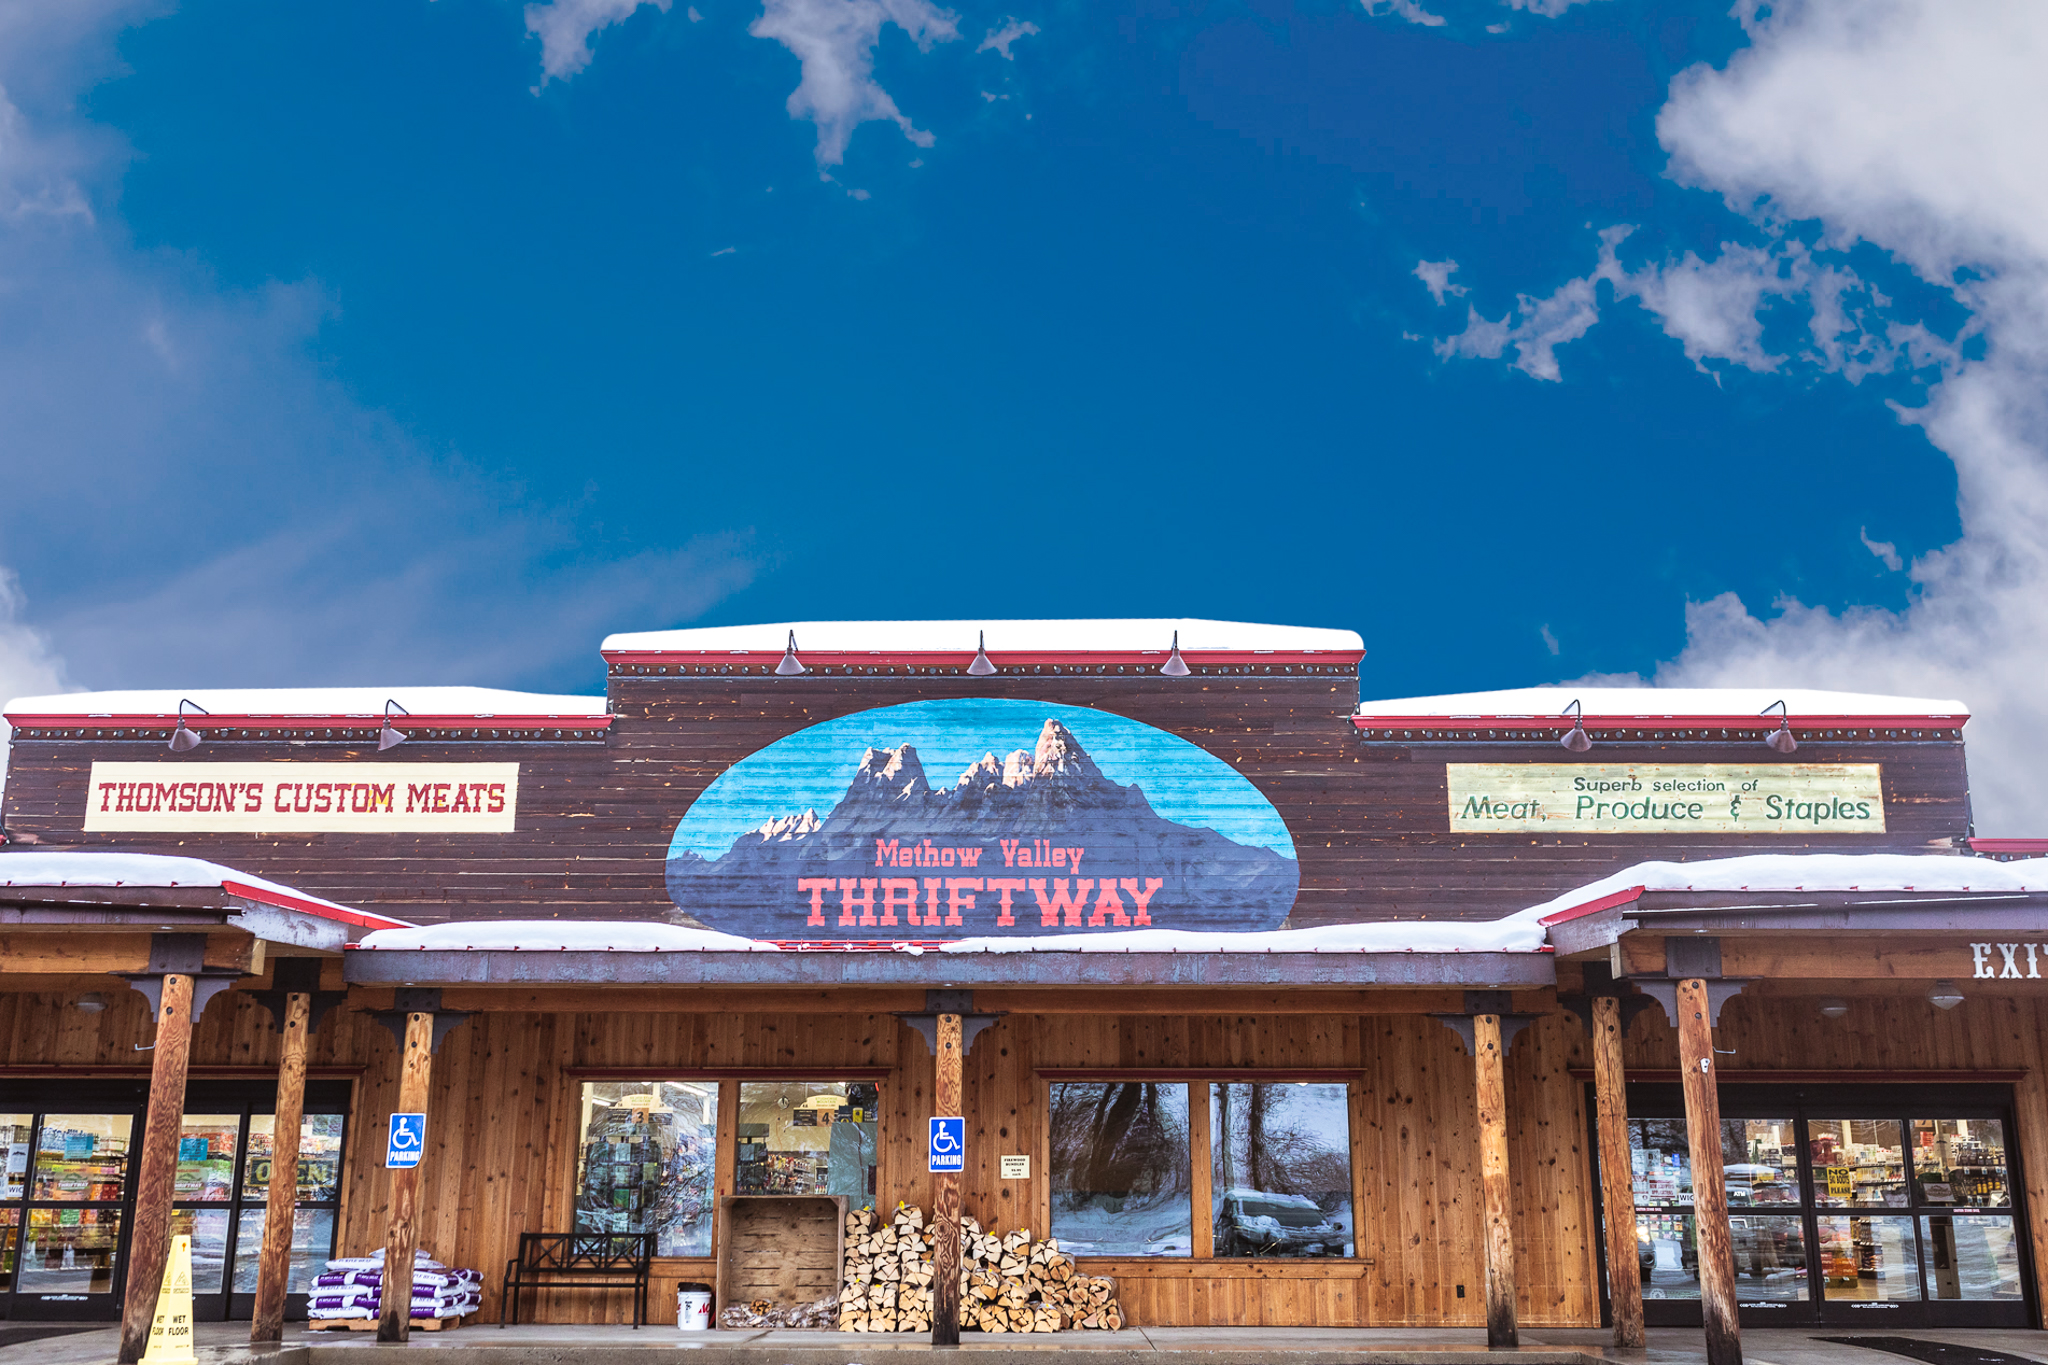 Methow Valley Thriftway Winthrop Washington